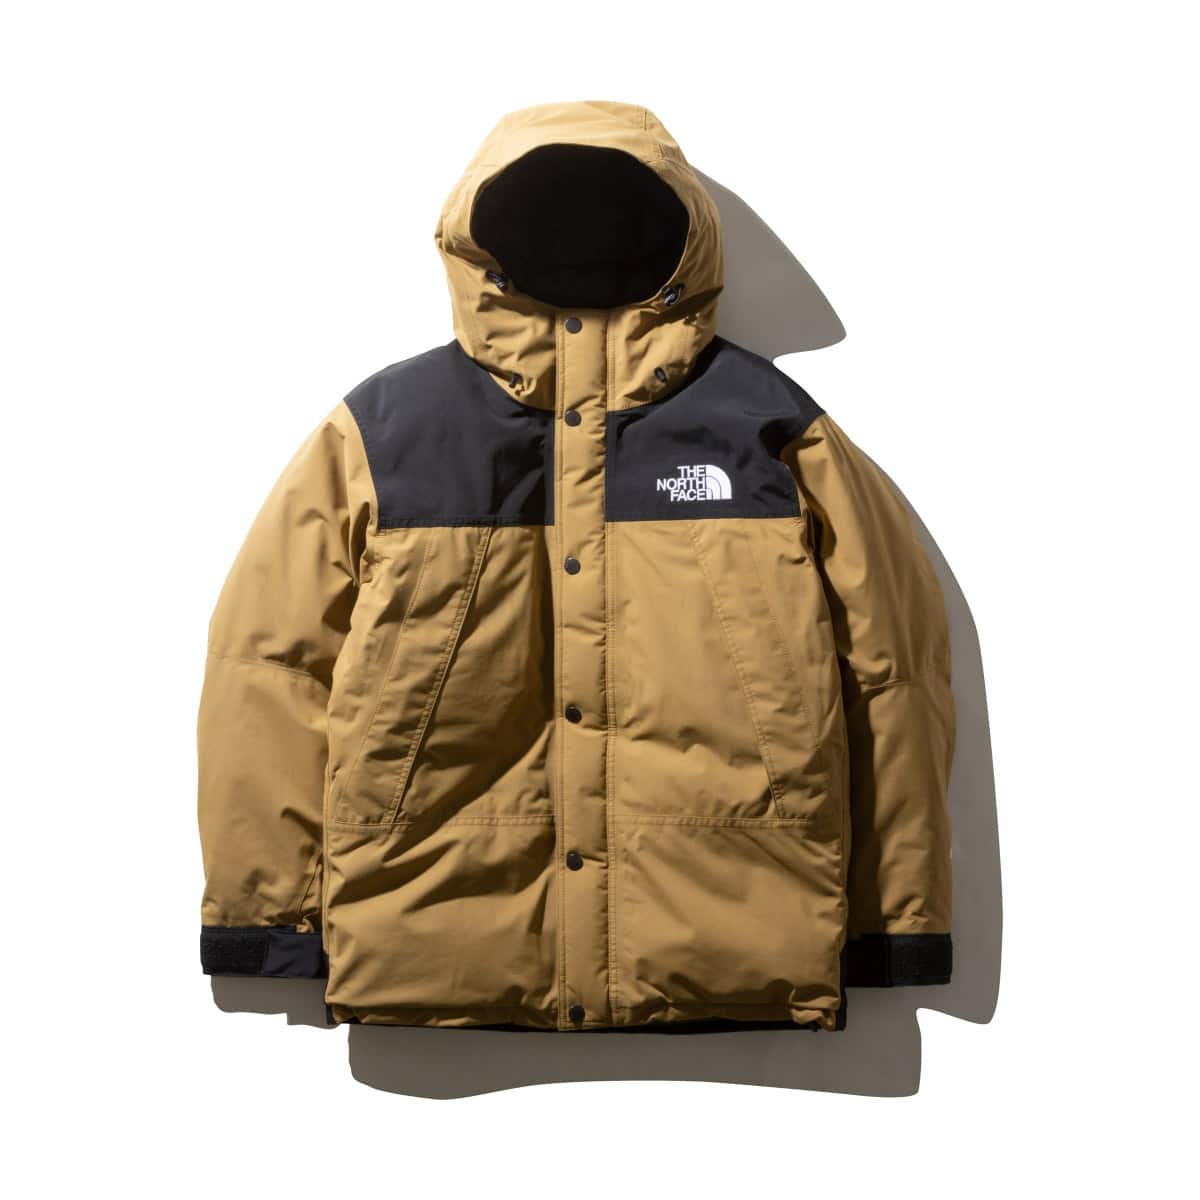 THE NORTH FACE MOUNTAIN DOWN JK ブリティッシュカーキ 19FW-I_photo_large